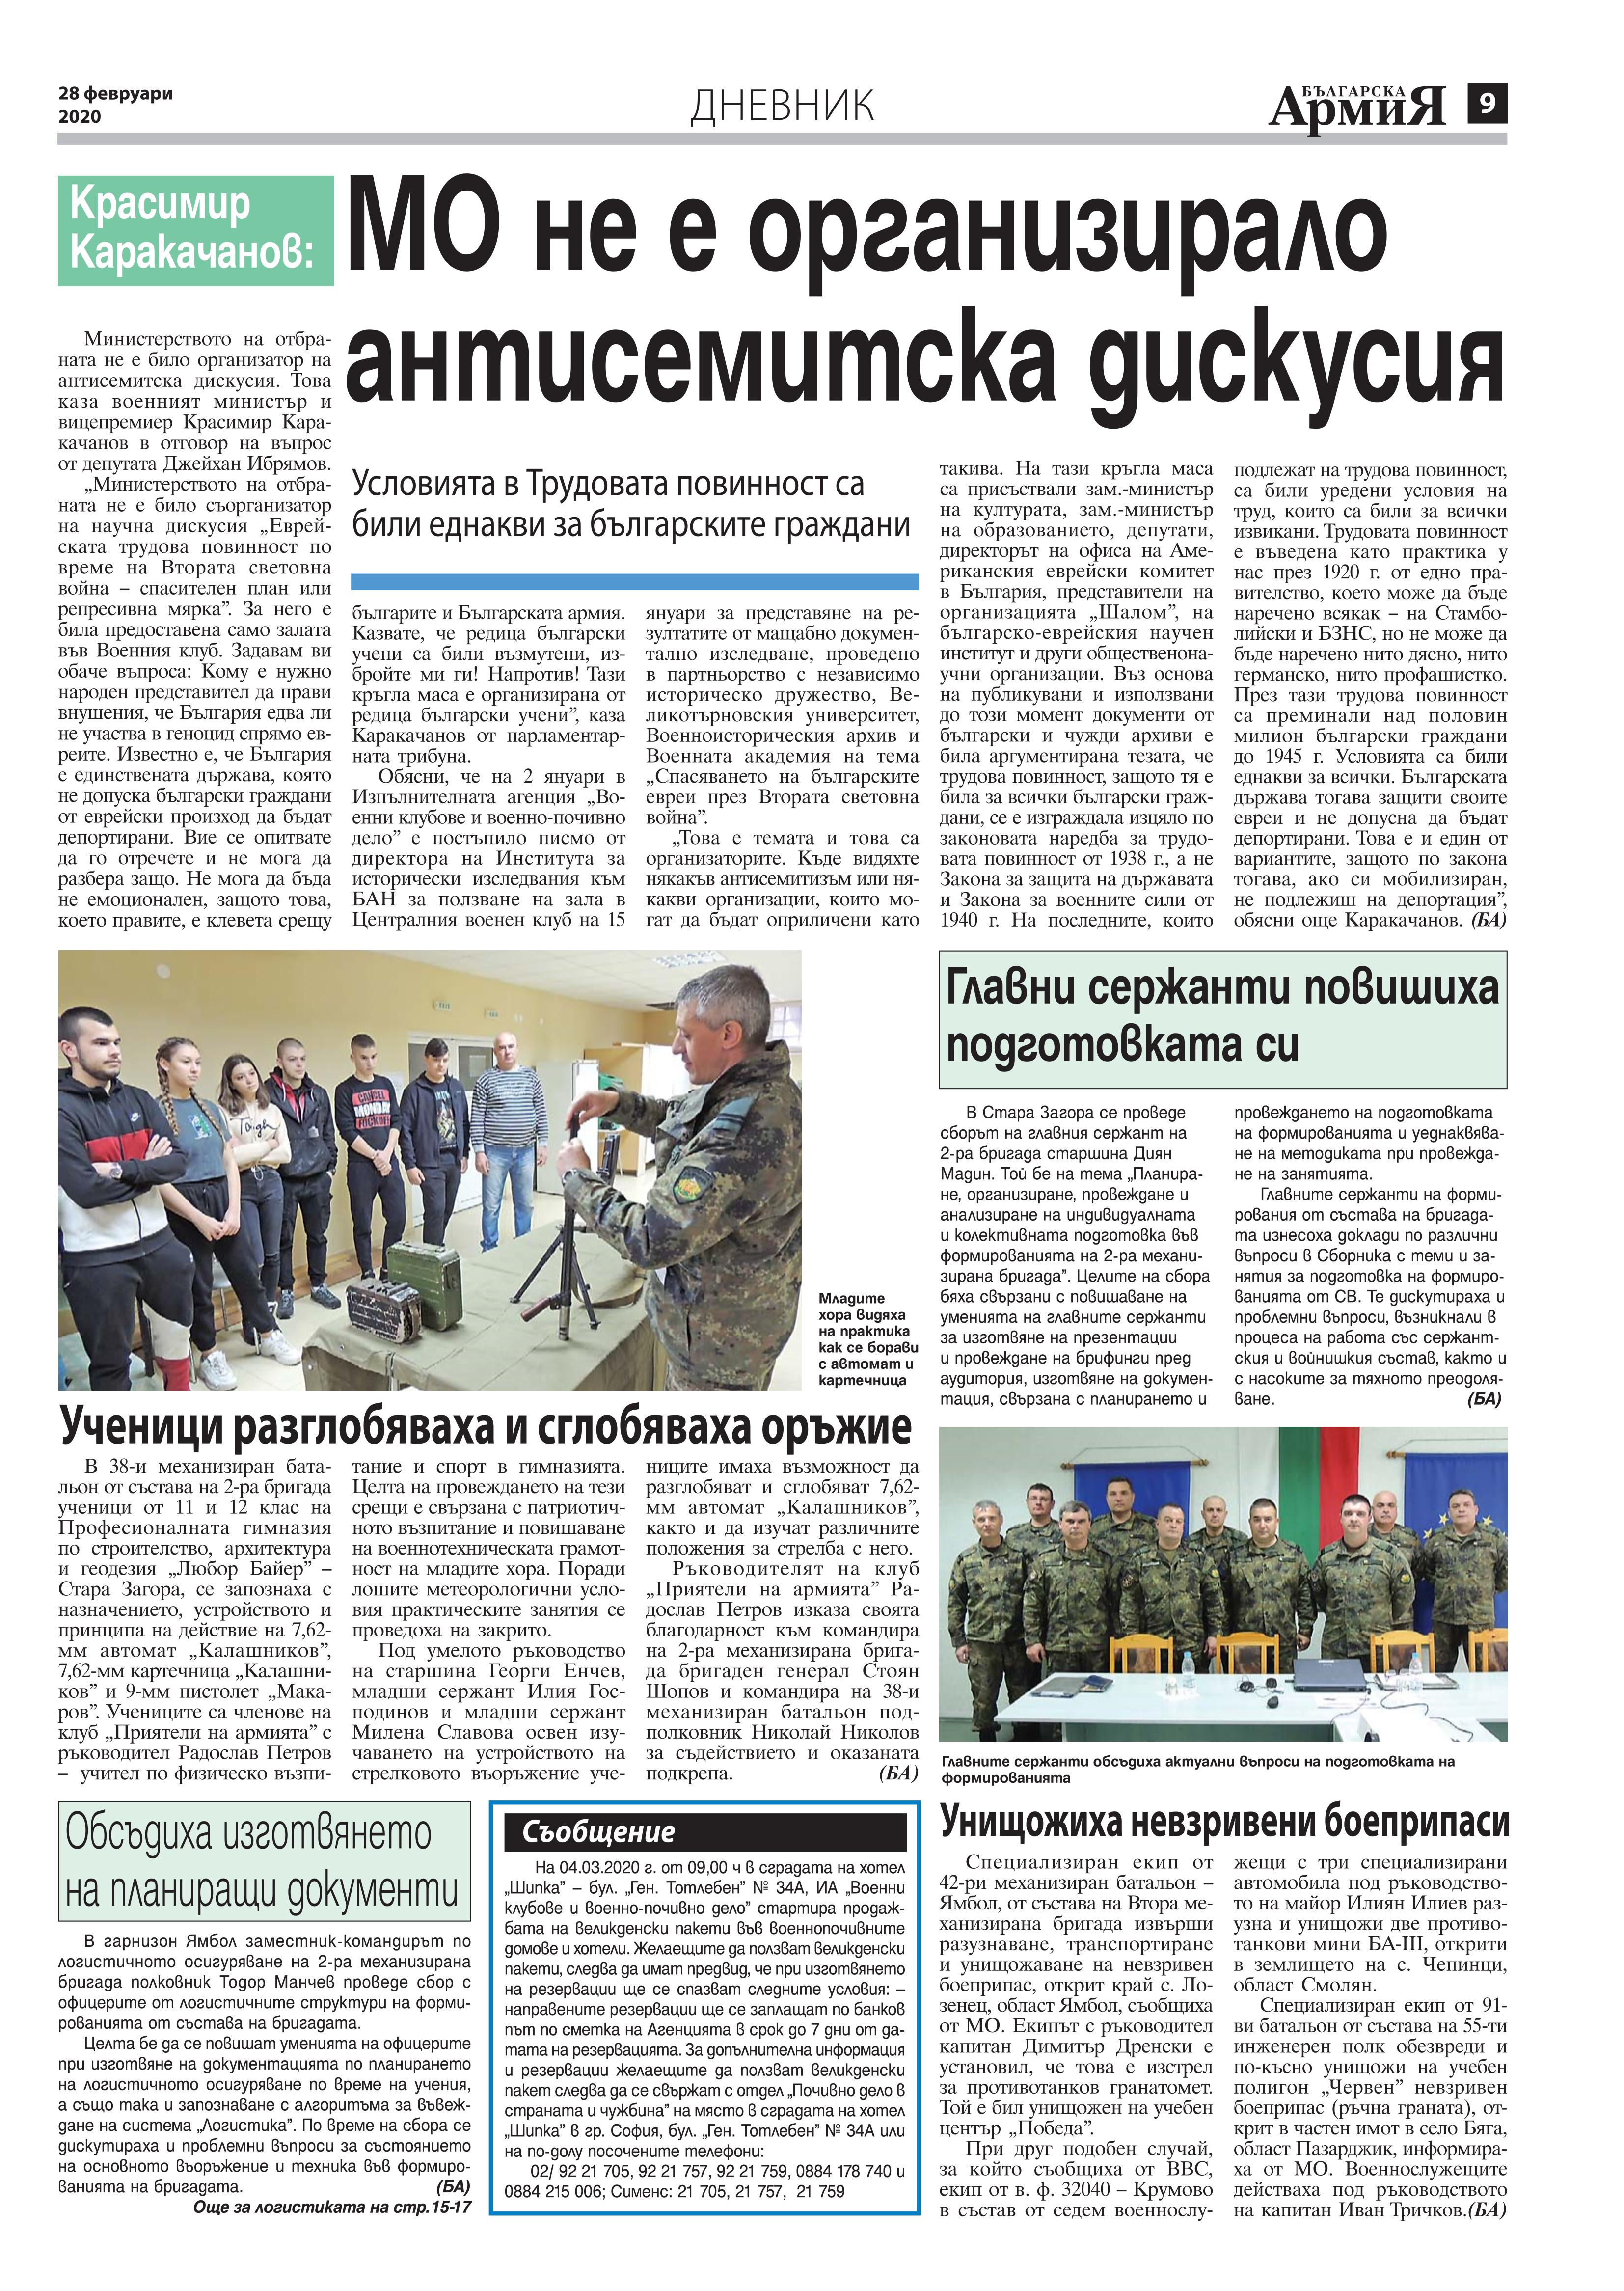 https://www.armymedia.bg/wp-content/uploads/2015/06/09.page1_-126.jpg